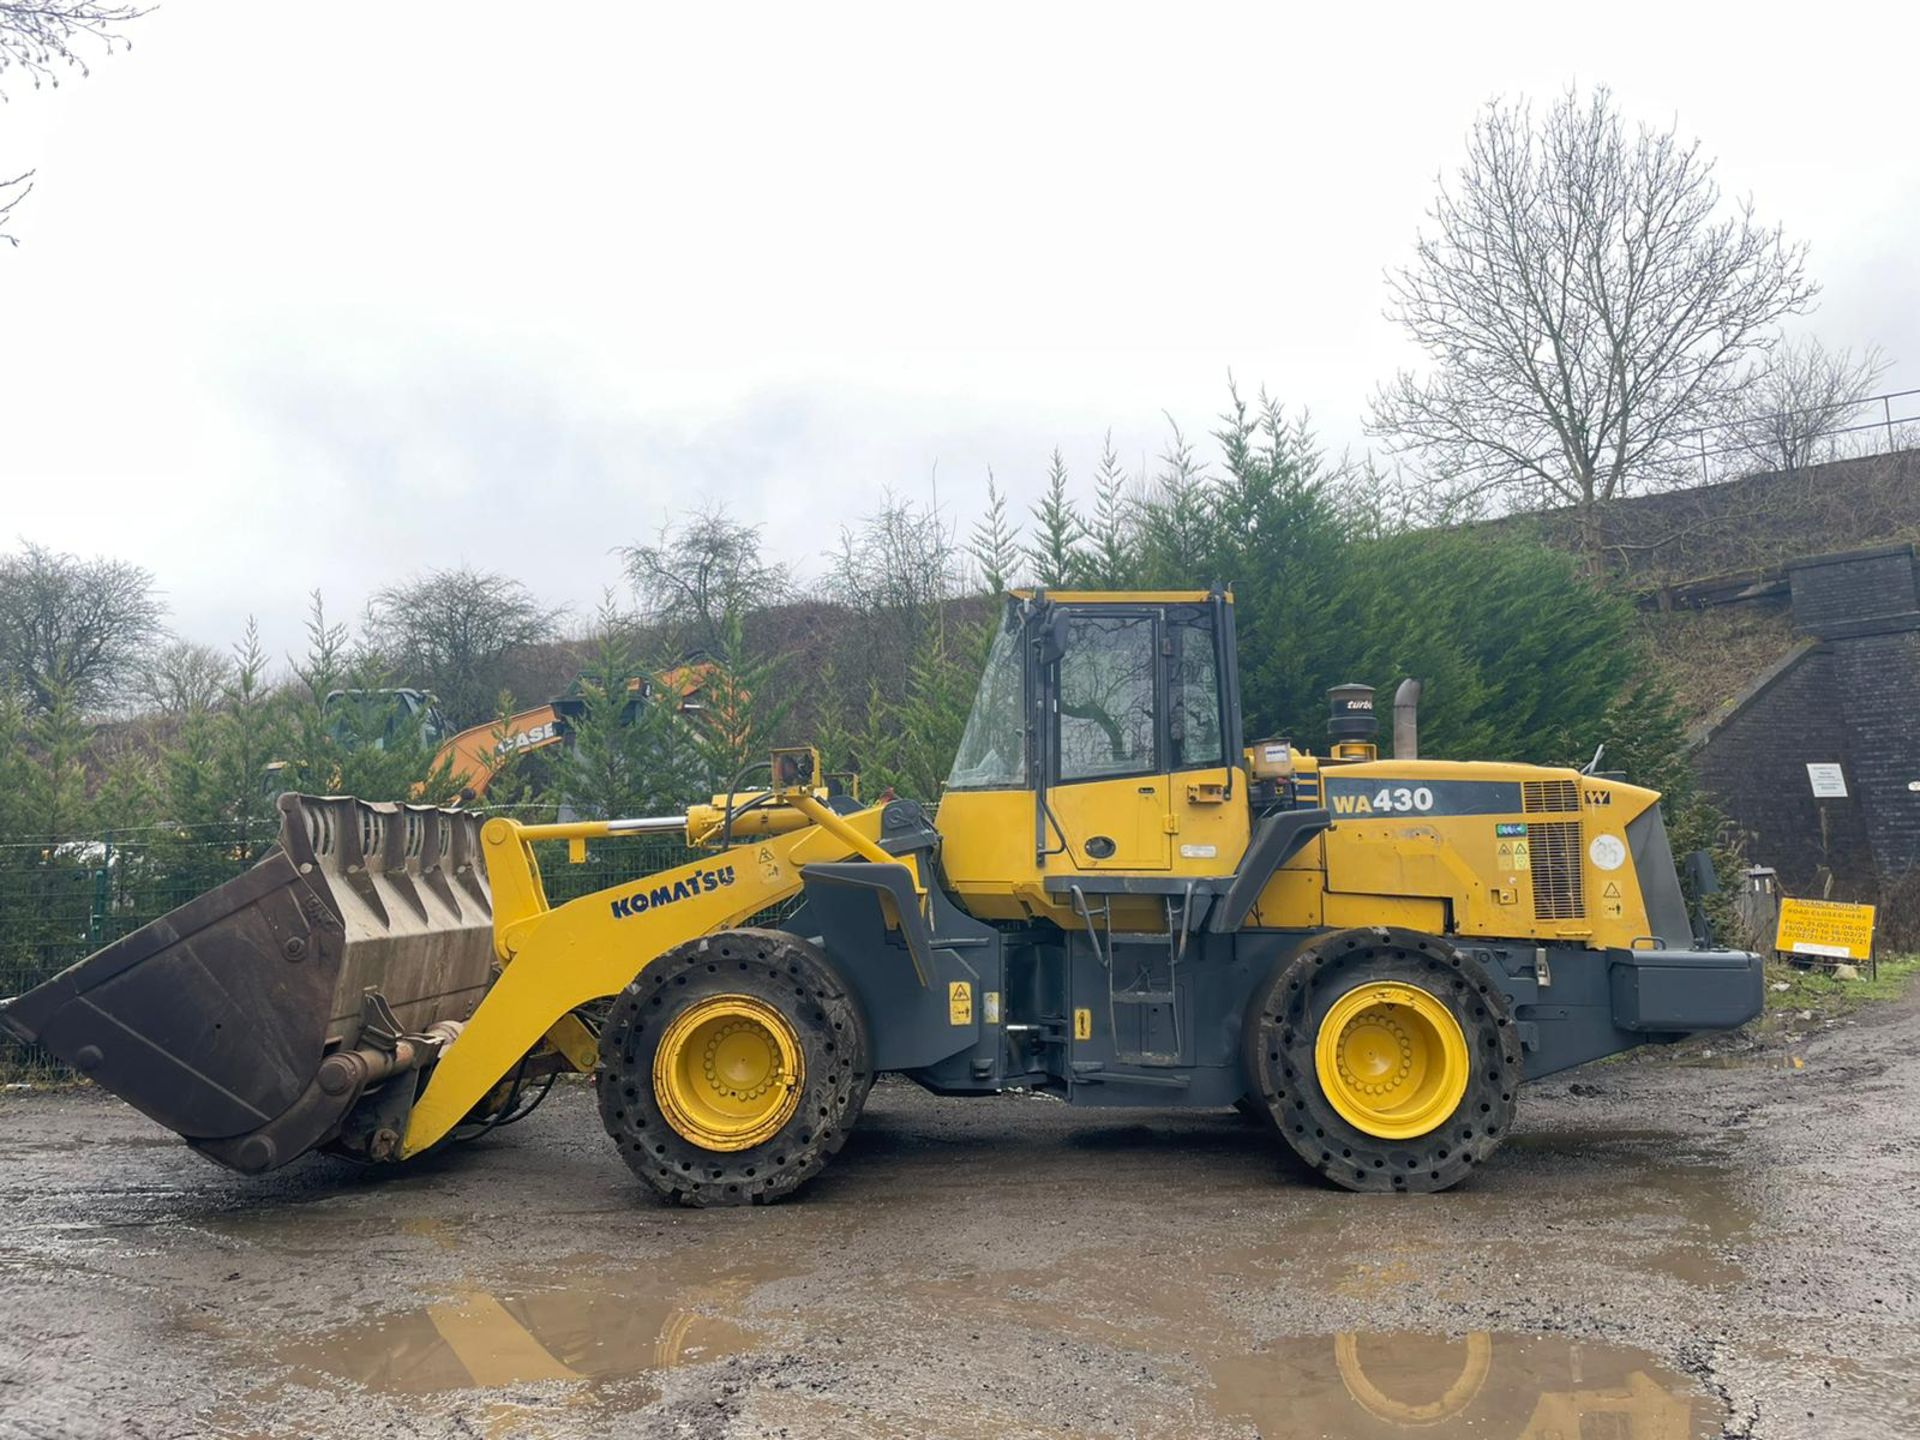 KOMATSU WA430 LOADING SHOVEL, HIGH TIP BUCKET, AUTO GREASING, SOLID TYRES, YEAR 2009 *PLUS VAT* - Image 3 of 8